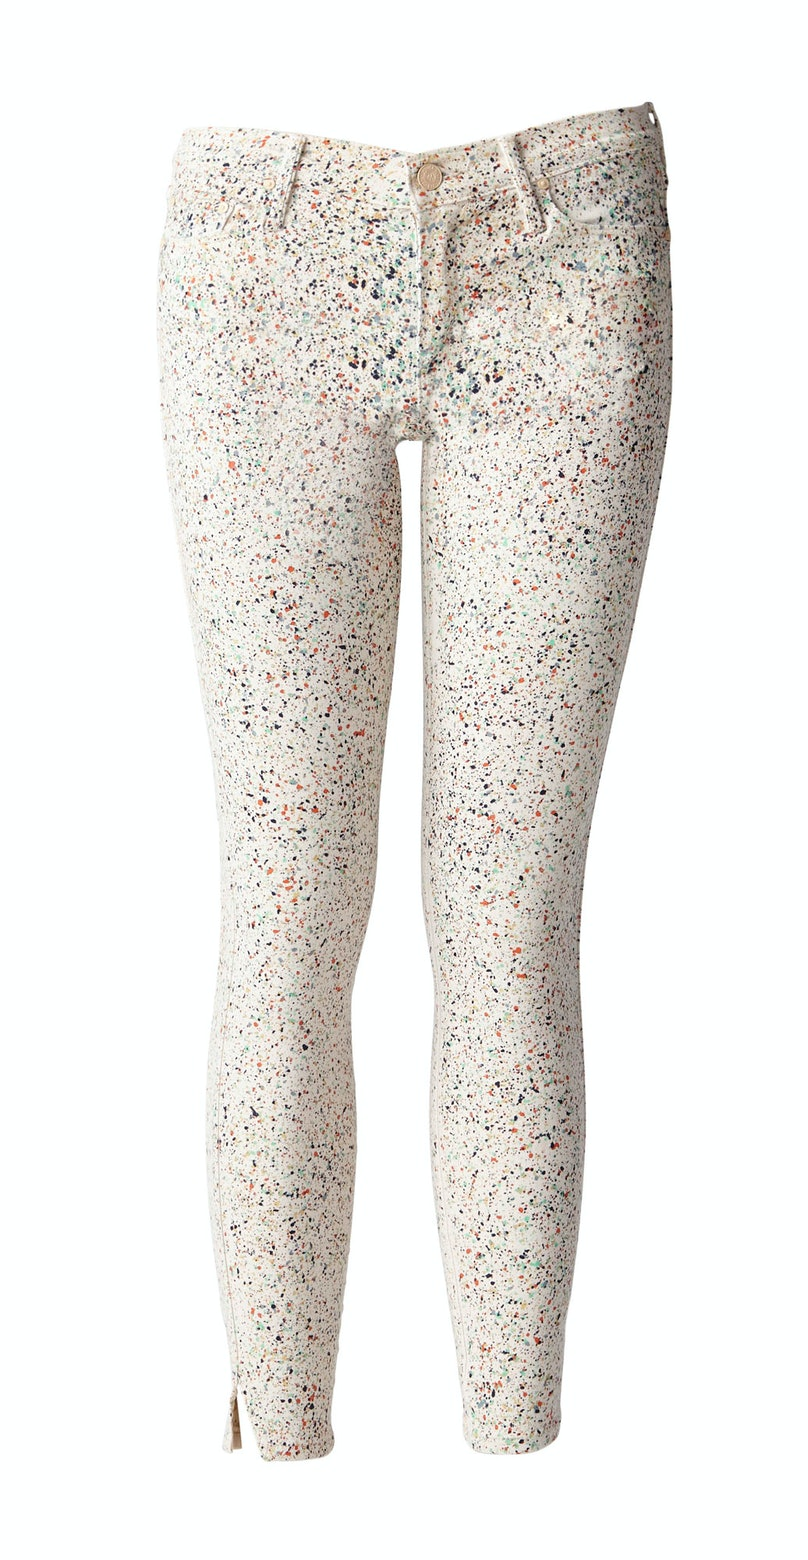 No celebratory confetti required with these festive jeans.       *Mother printed jeans, $198, [motherdenim.com](http://motherdenim.com/).*